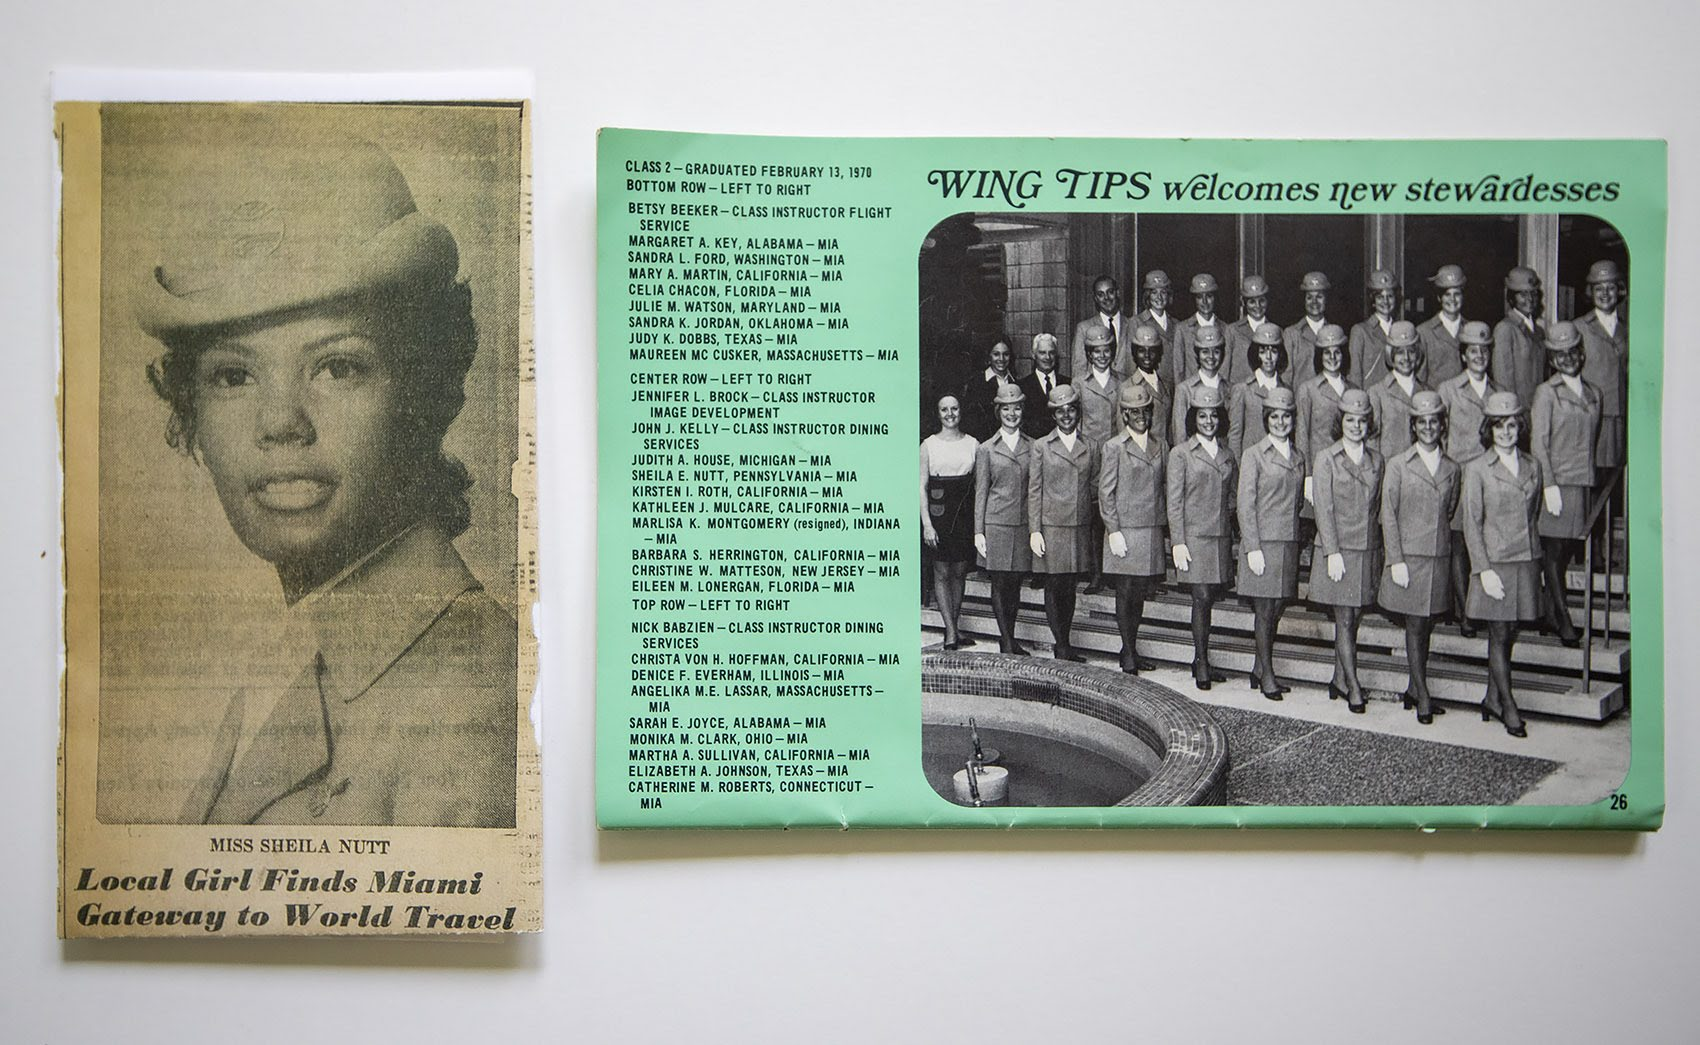 A newspaper clipping from a Philadelphia paper announces Sheila Nutt's hiring by Pan Am, left, and a photograph in the Pan Am publication Wing Tips shows the new class of stewardesses. (Jesse Costa/WBUR)